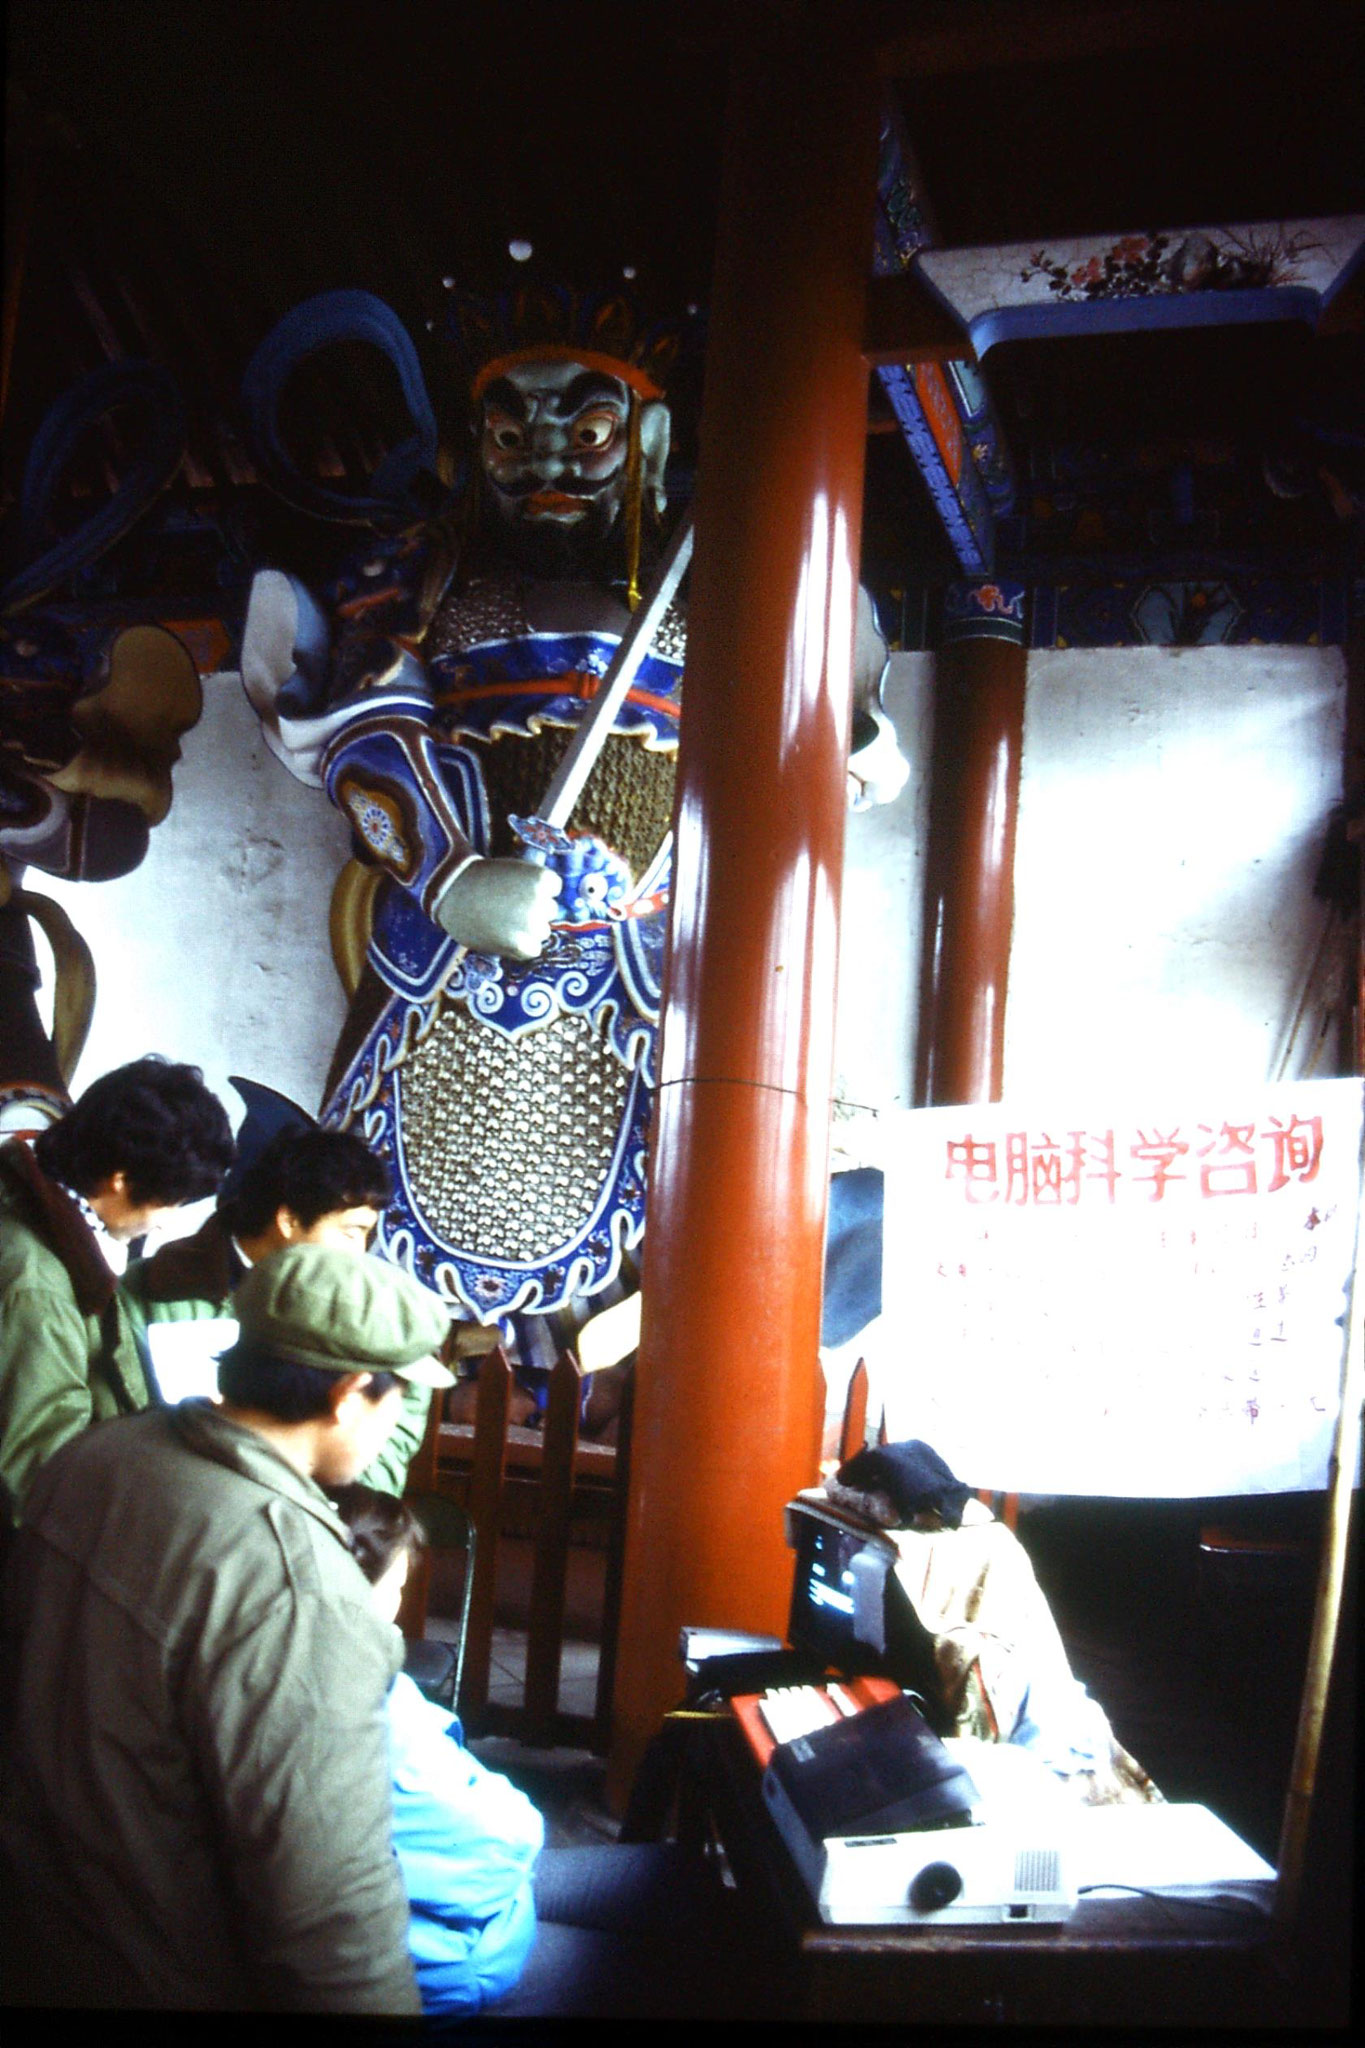 25/2/1989: 8: Kaifeng Xiangguo Monastery fortune telling computer